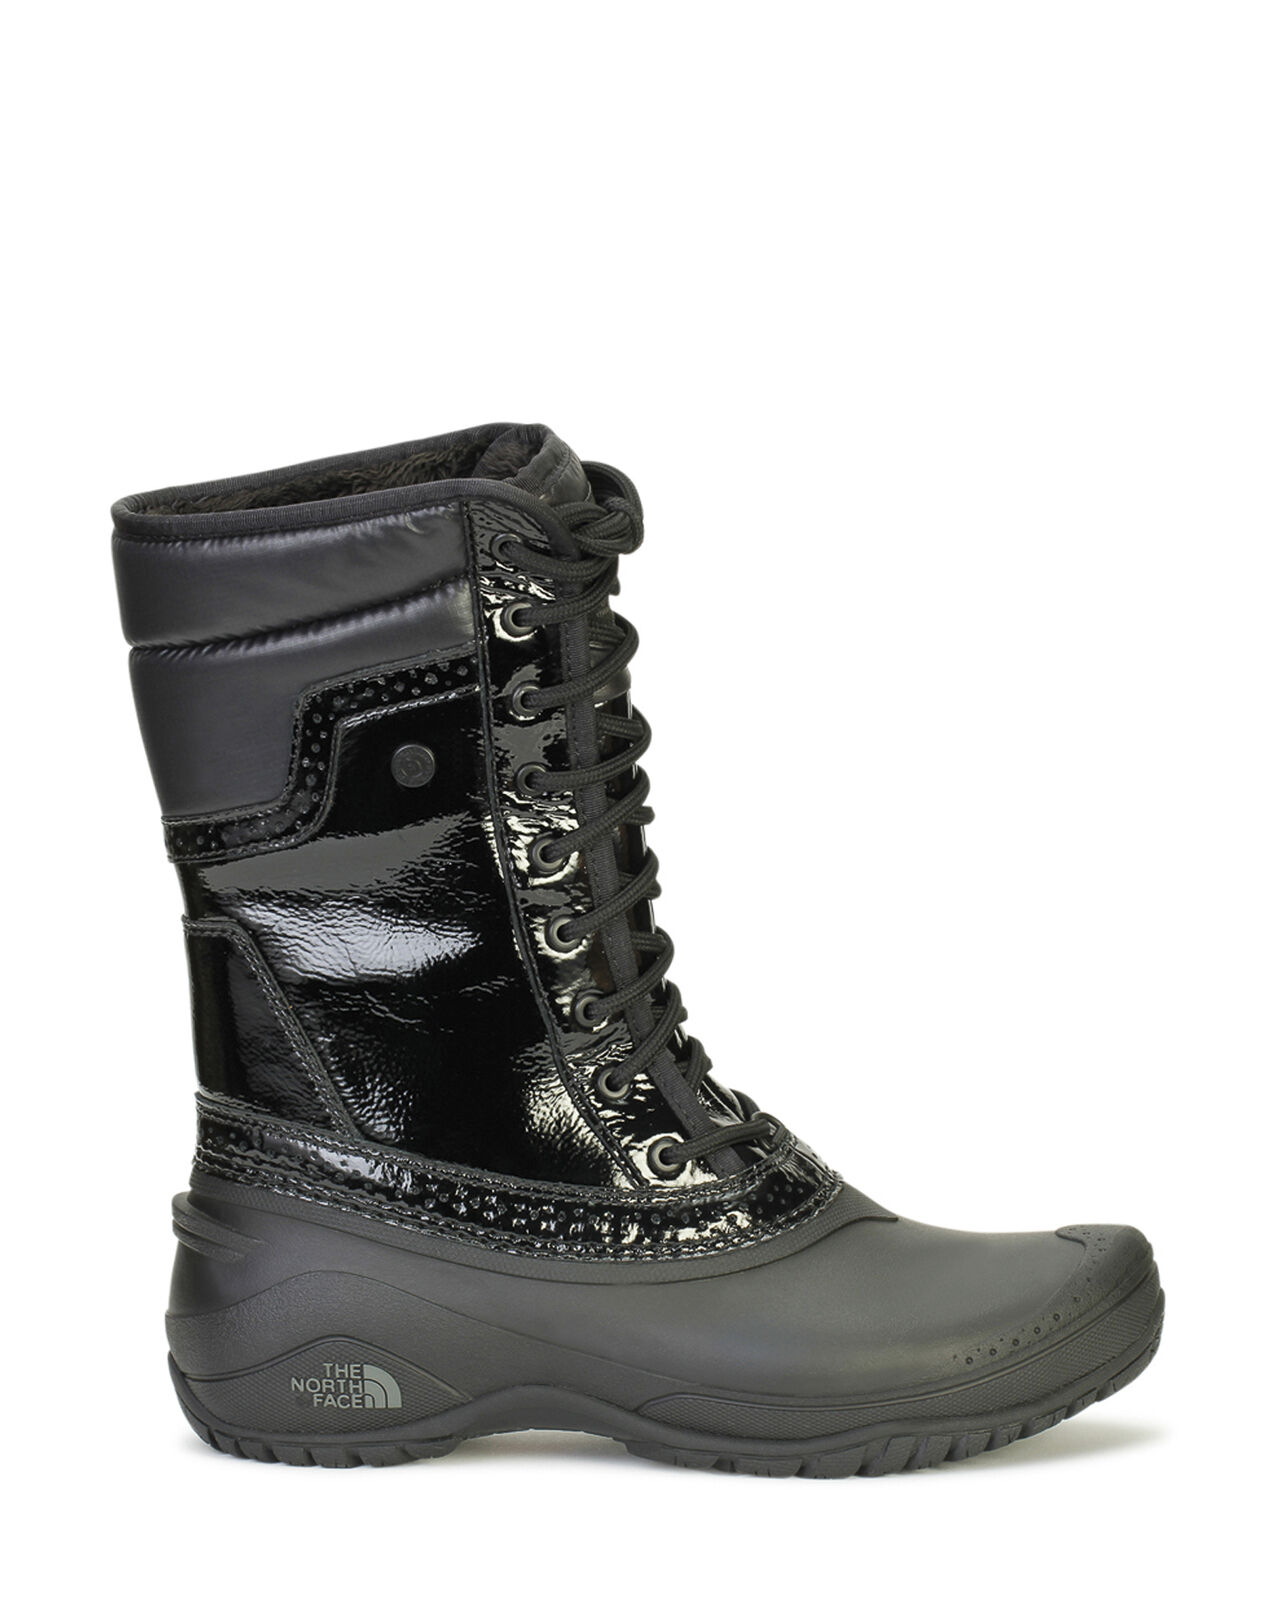 The North Face Mujer botas Impermeables Shellista II II II Mid Luxe Negro gris ca4ec8